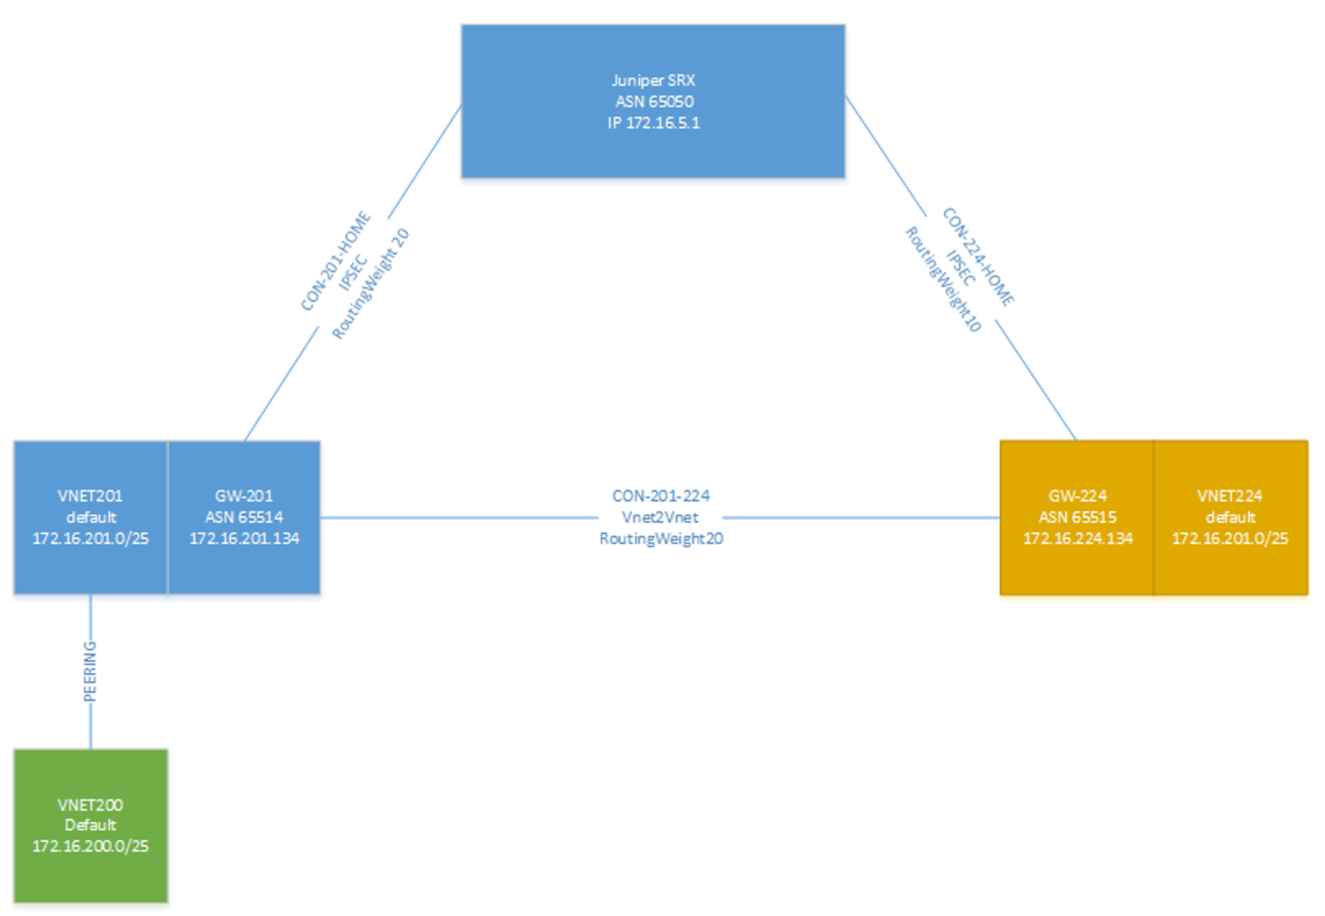 Redundant SRX Junos to Azure VPN with VNET Peering –